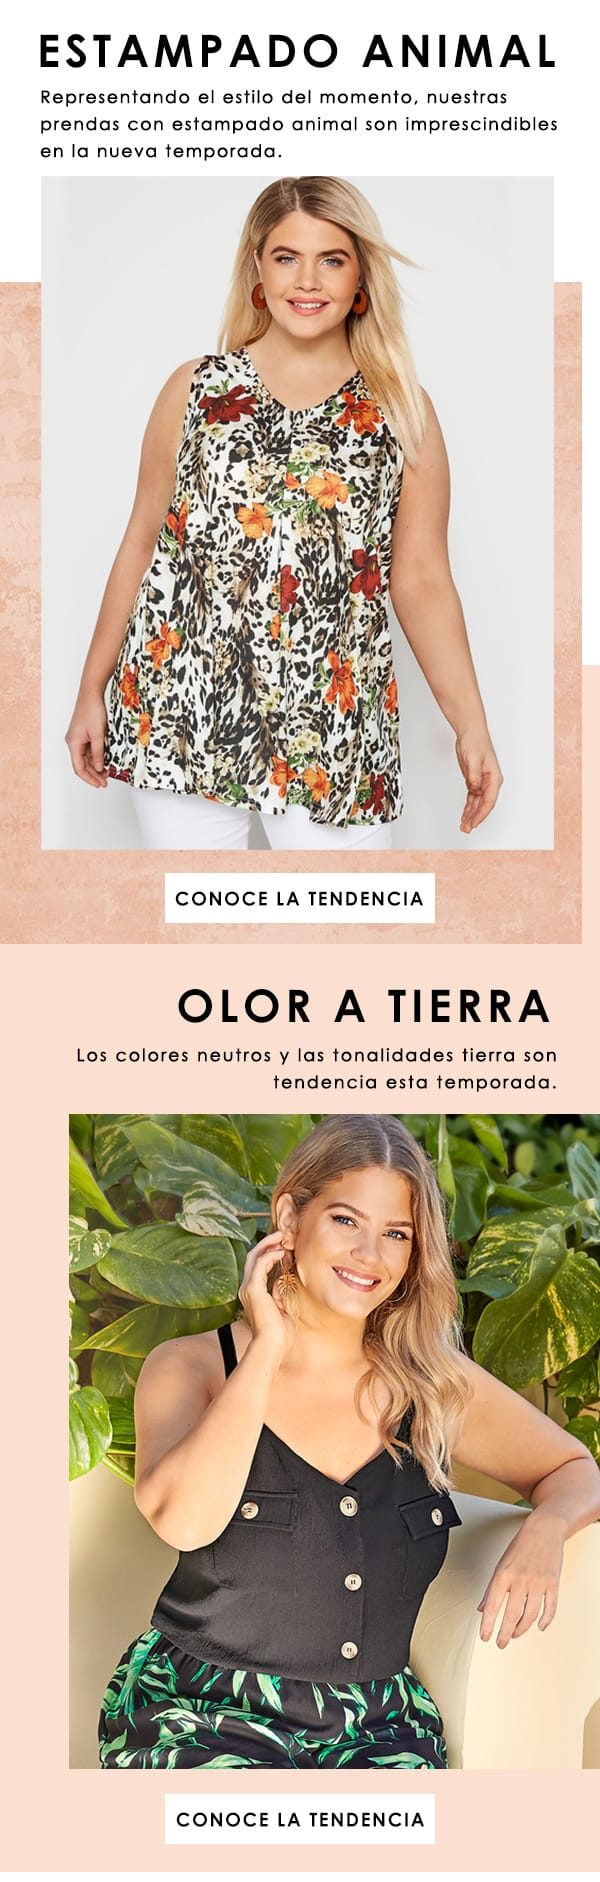 Estampado animal, Olor a tierra